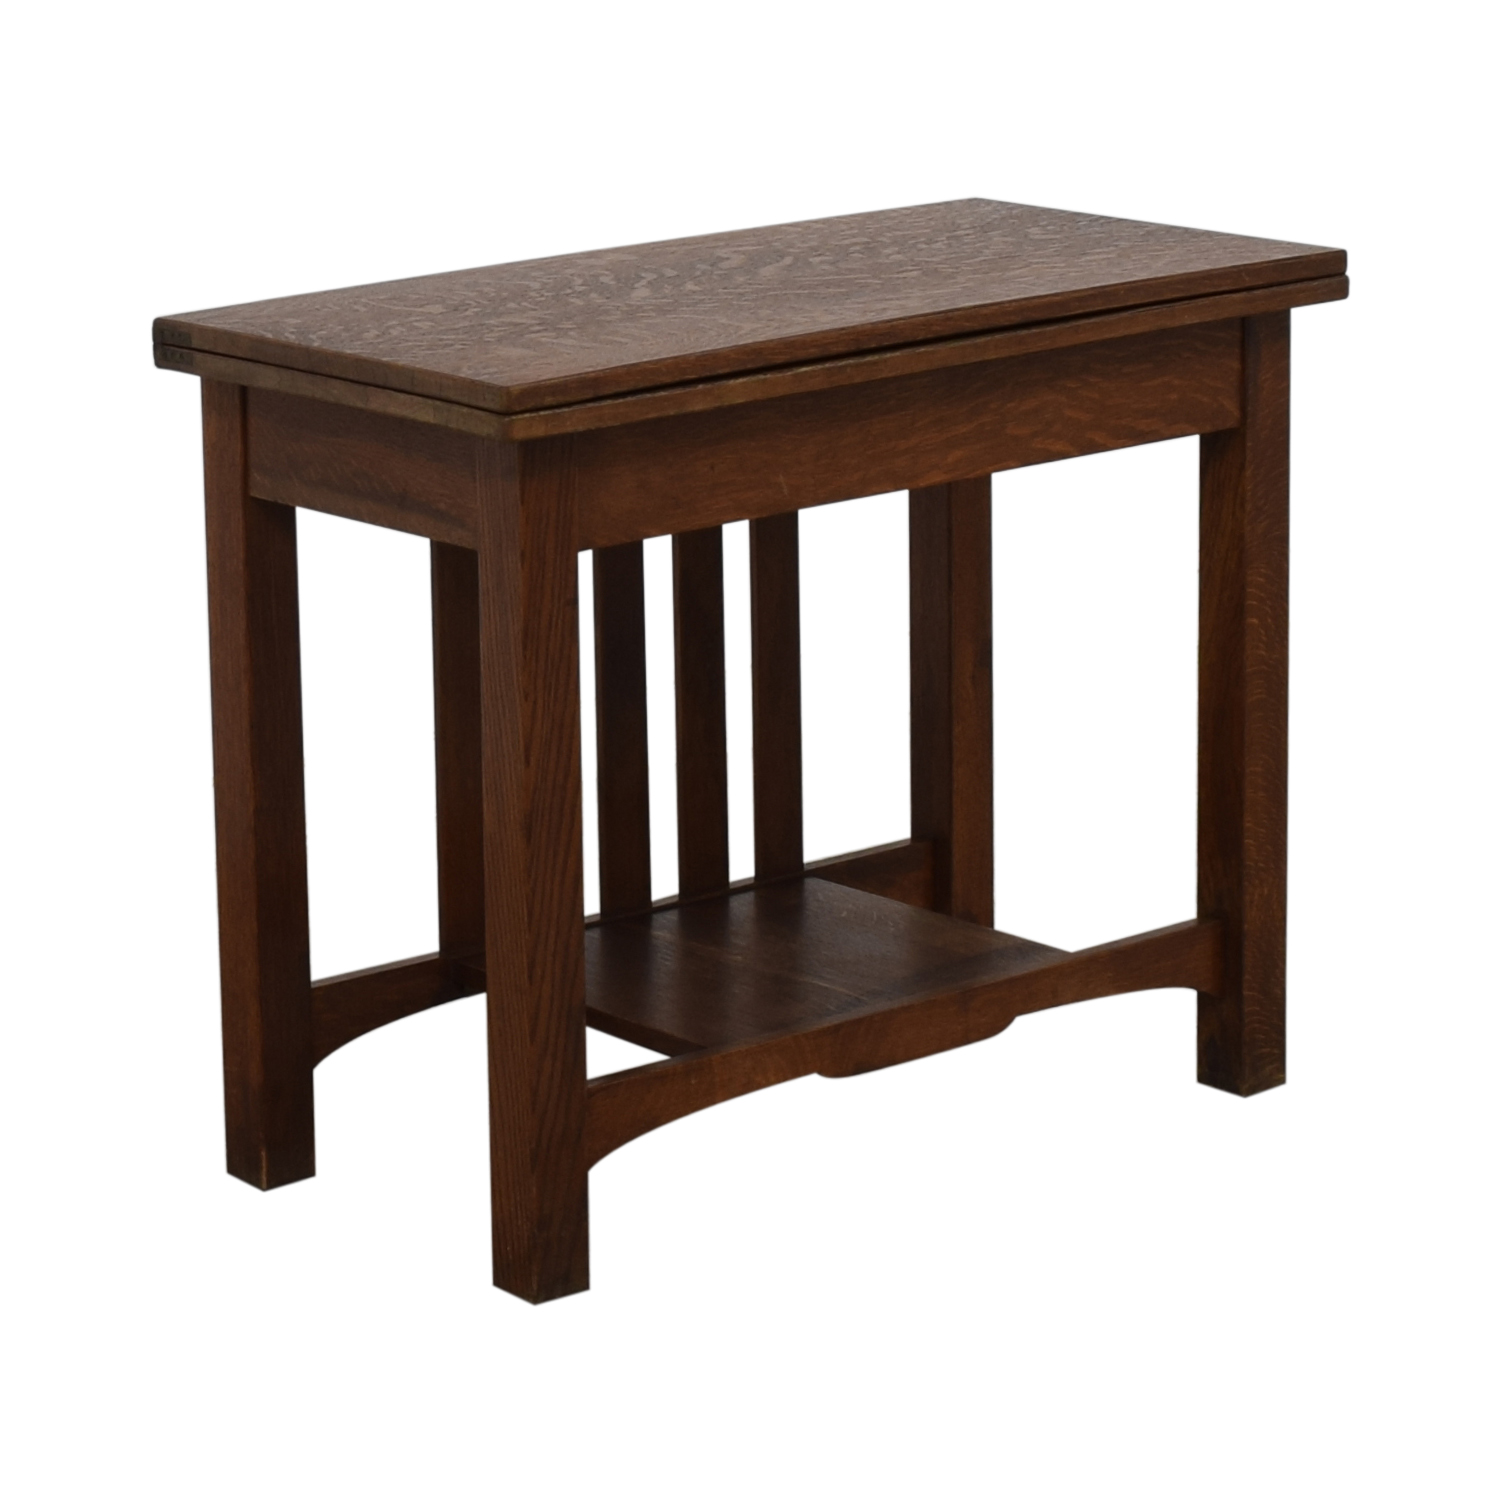 Stickley Furniture Stickley Game Table Dinner Tables